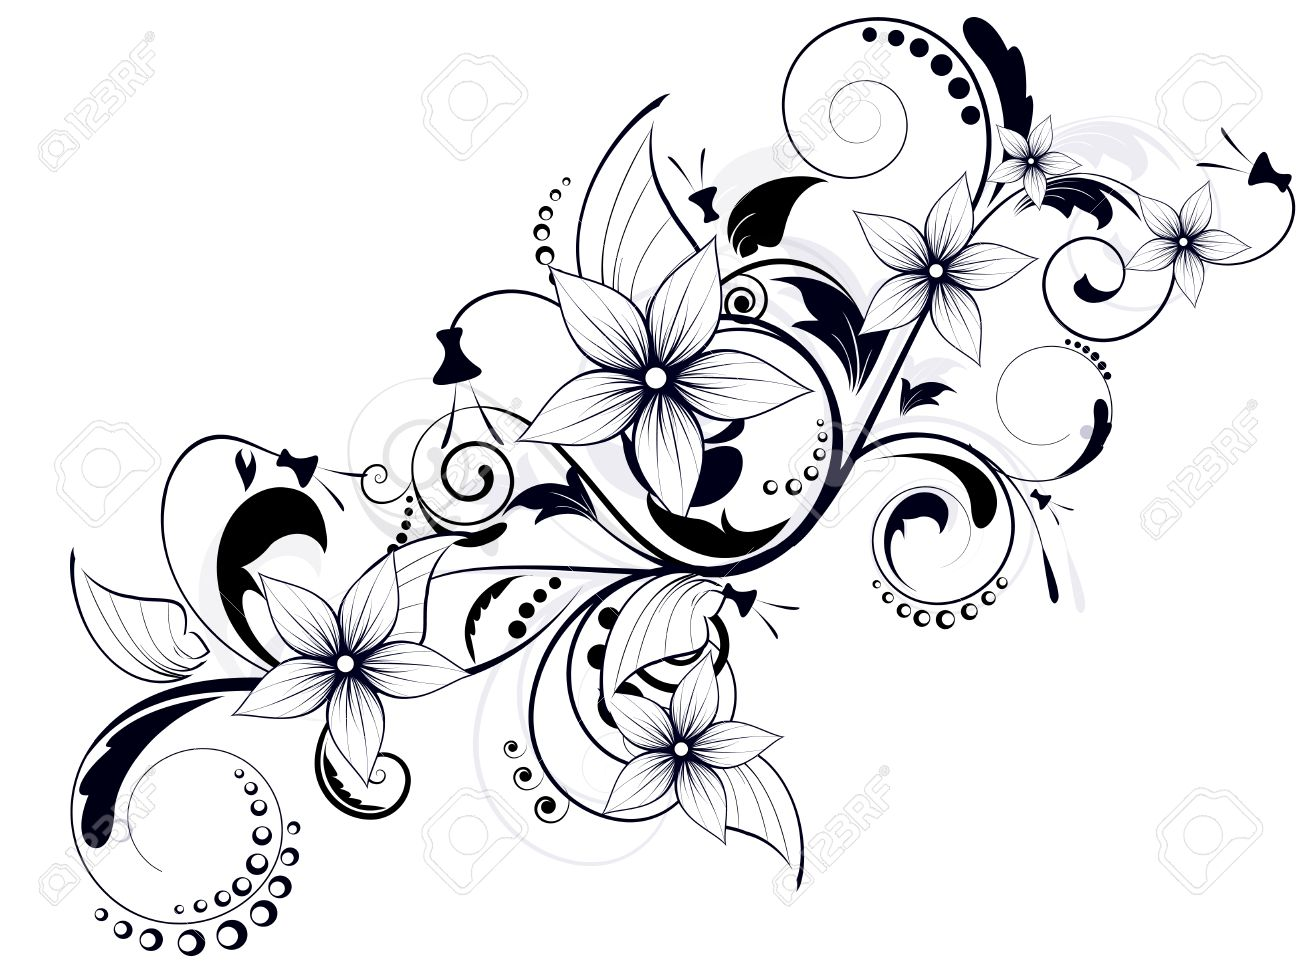 floral design element with swirls for spring royalty free cliparts